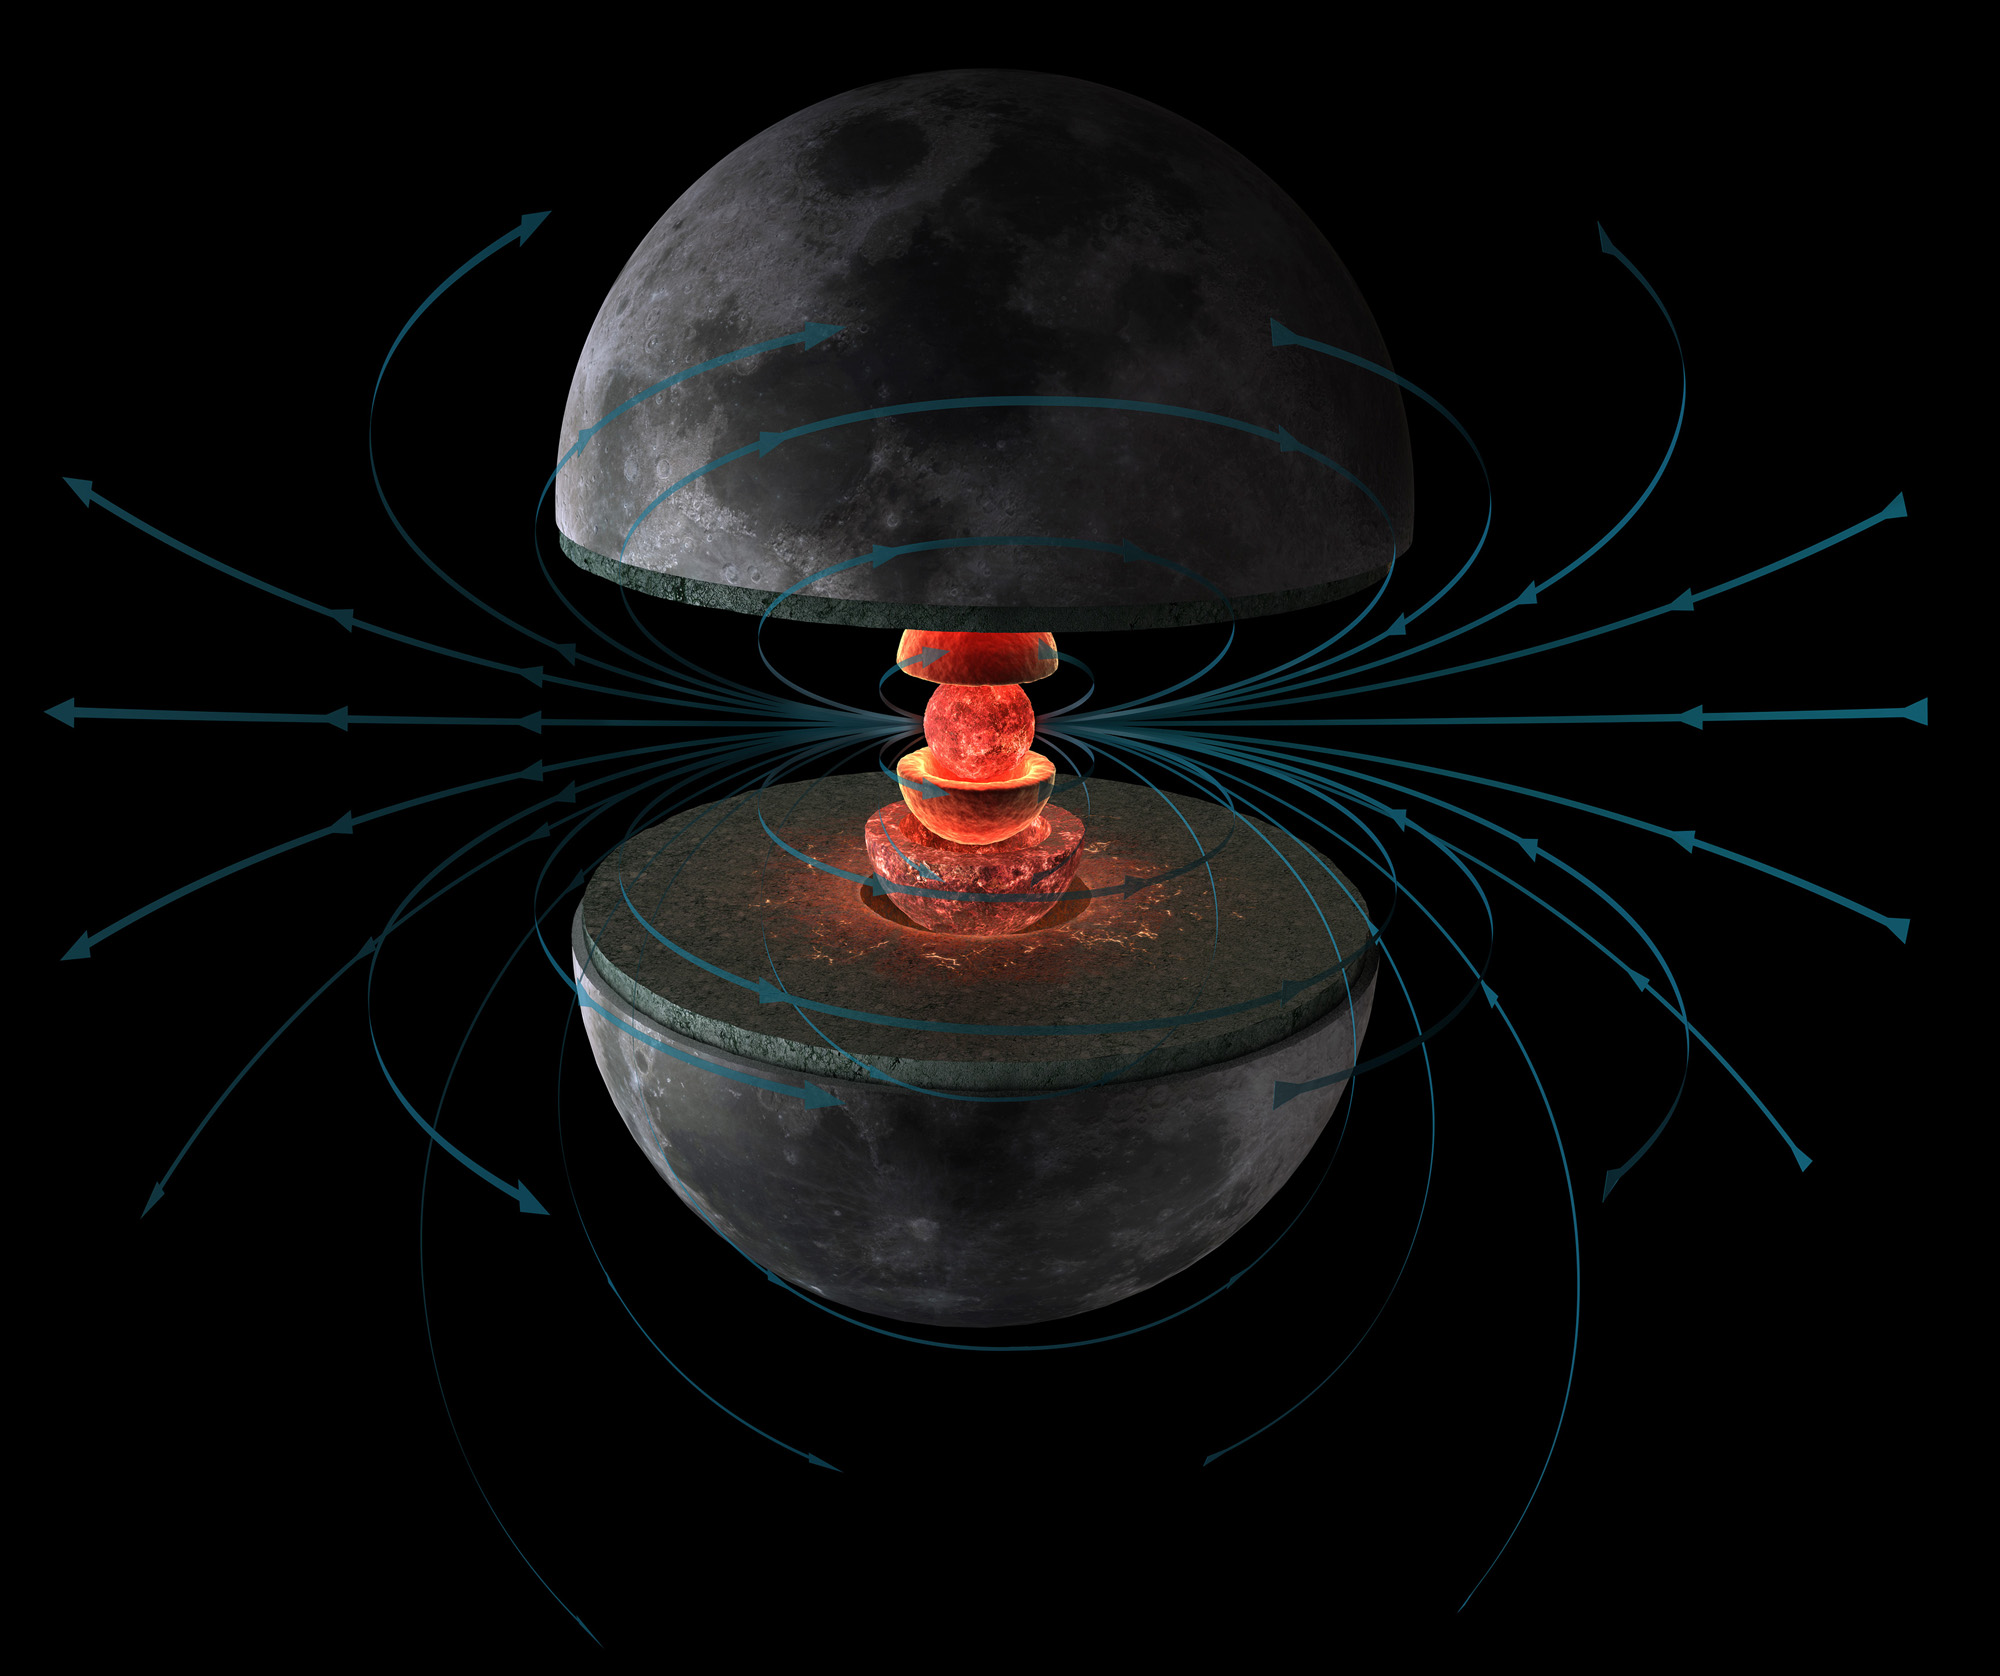 Latest Scientific News: Surprise Finding About Moon Puts Hunt For Alien Life In